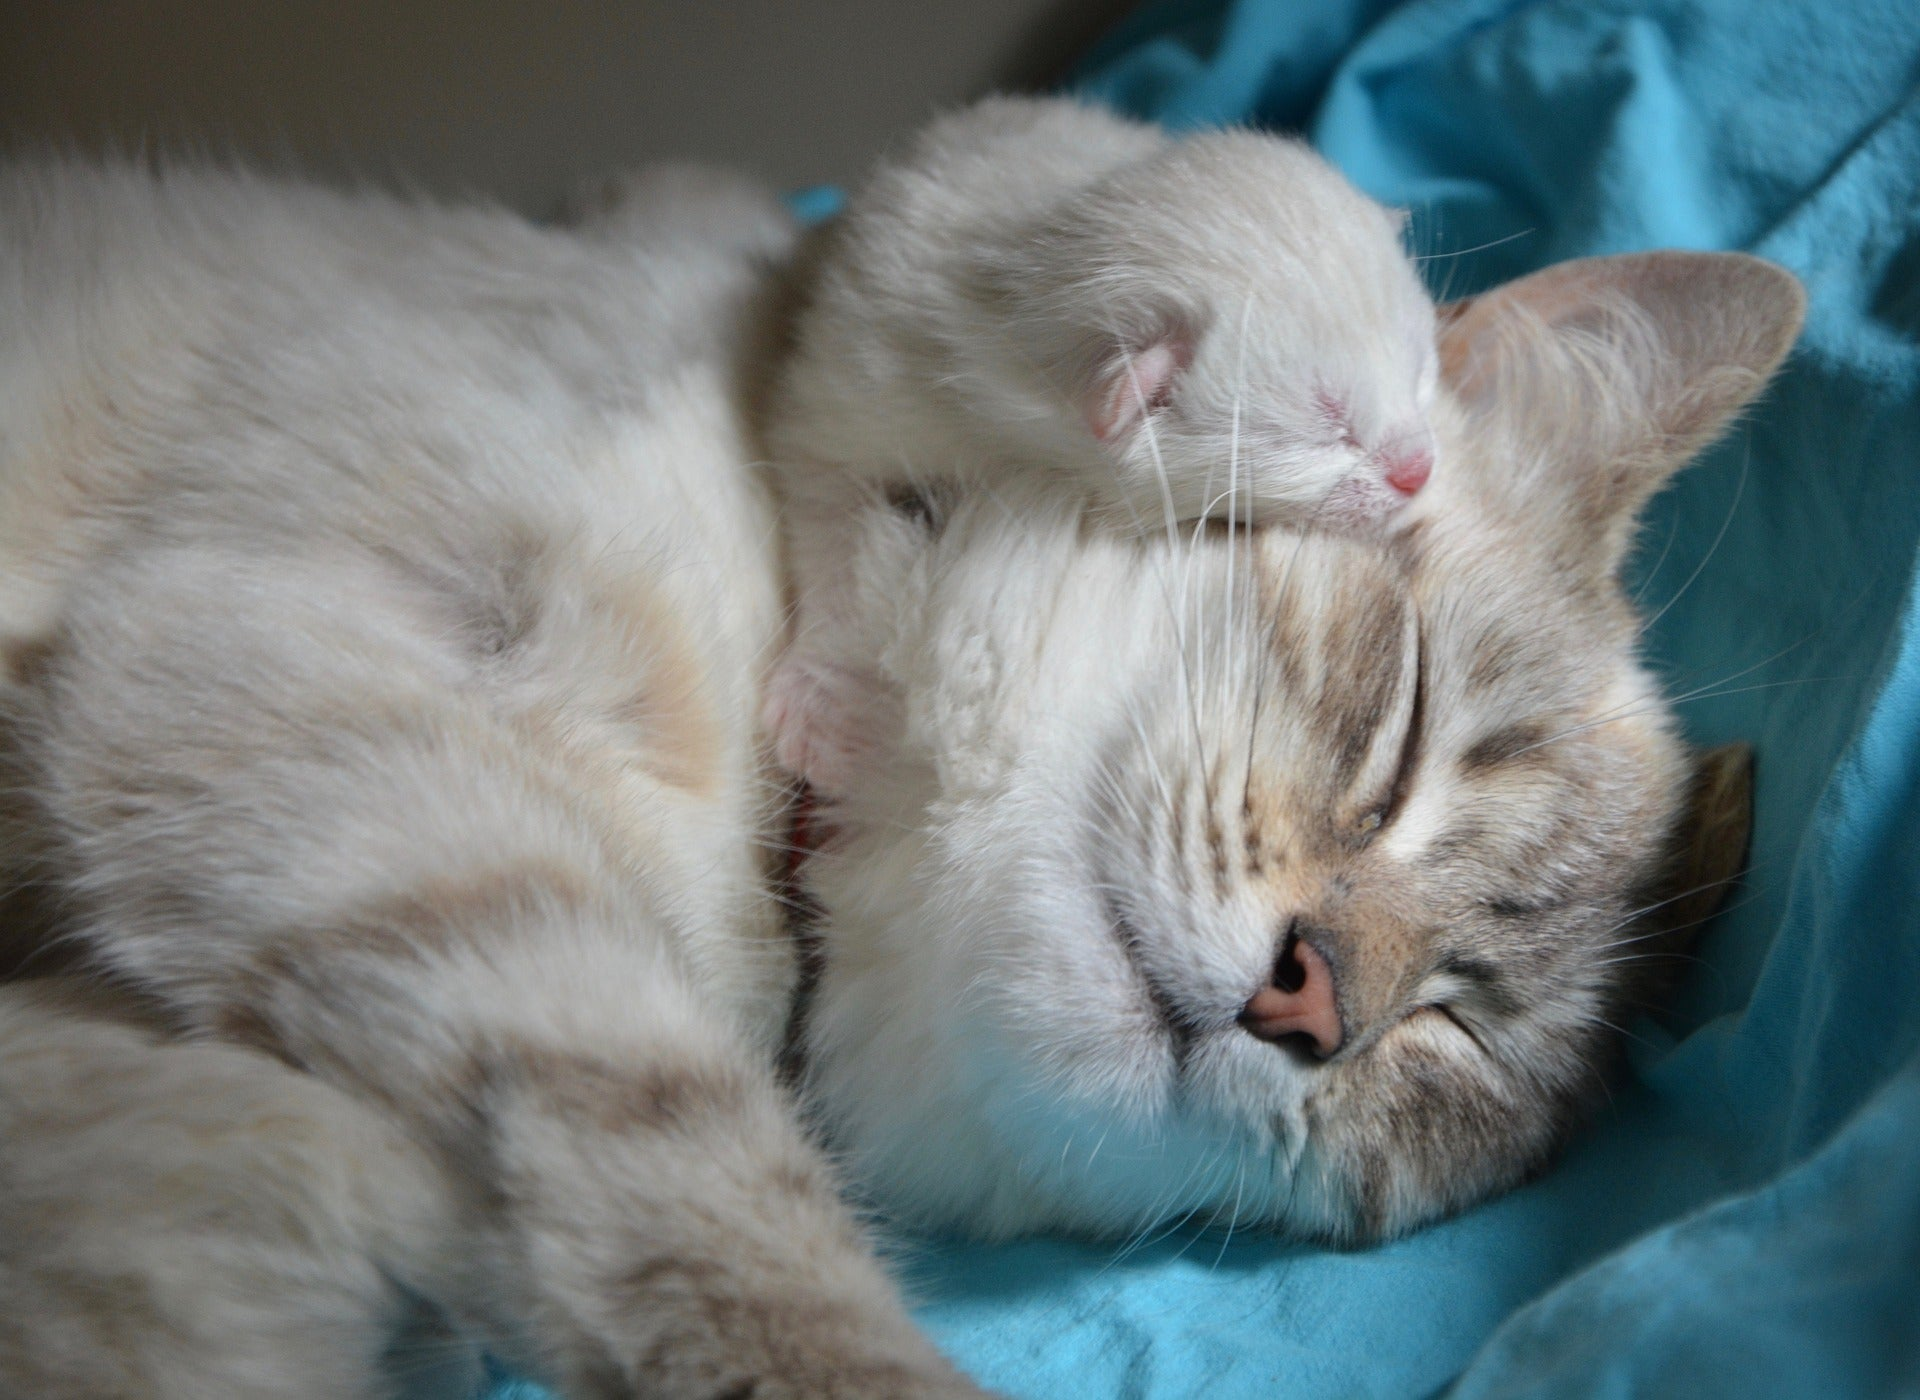 pregnancy in cats queen mom with kitten